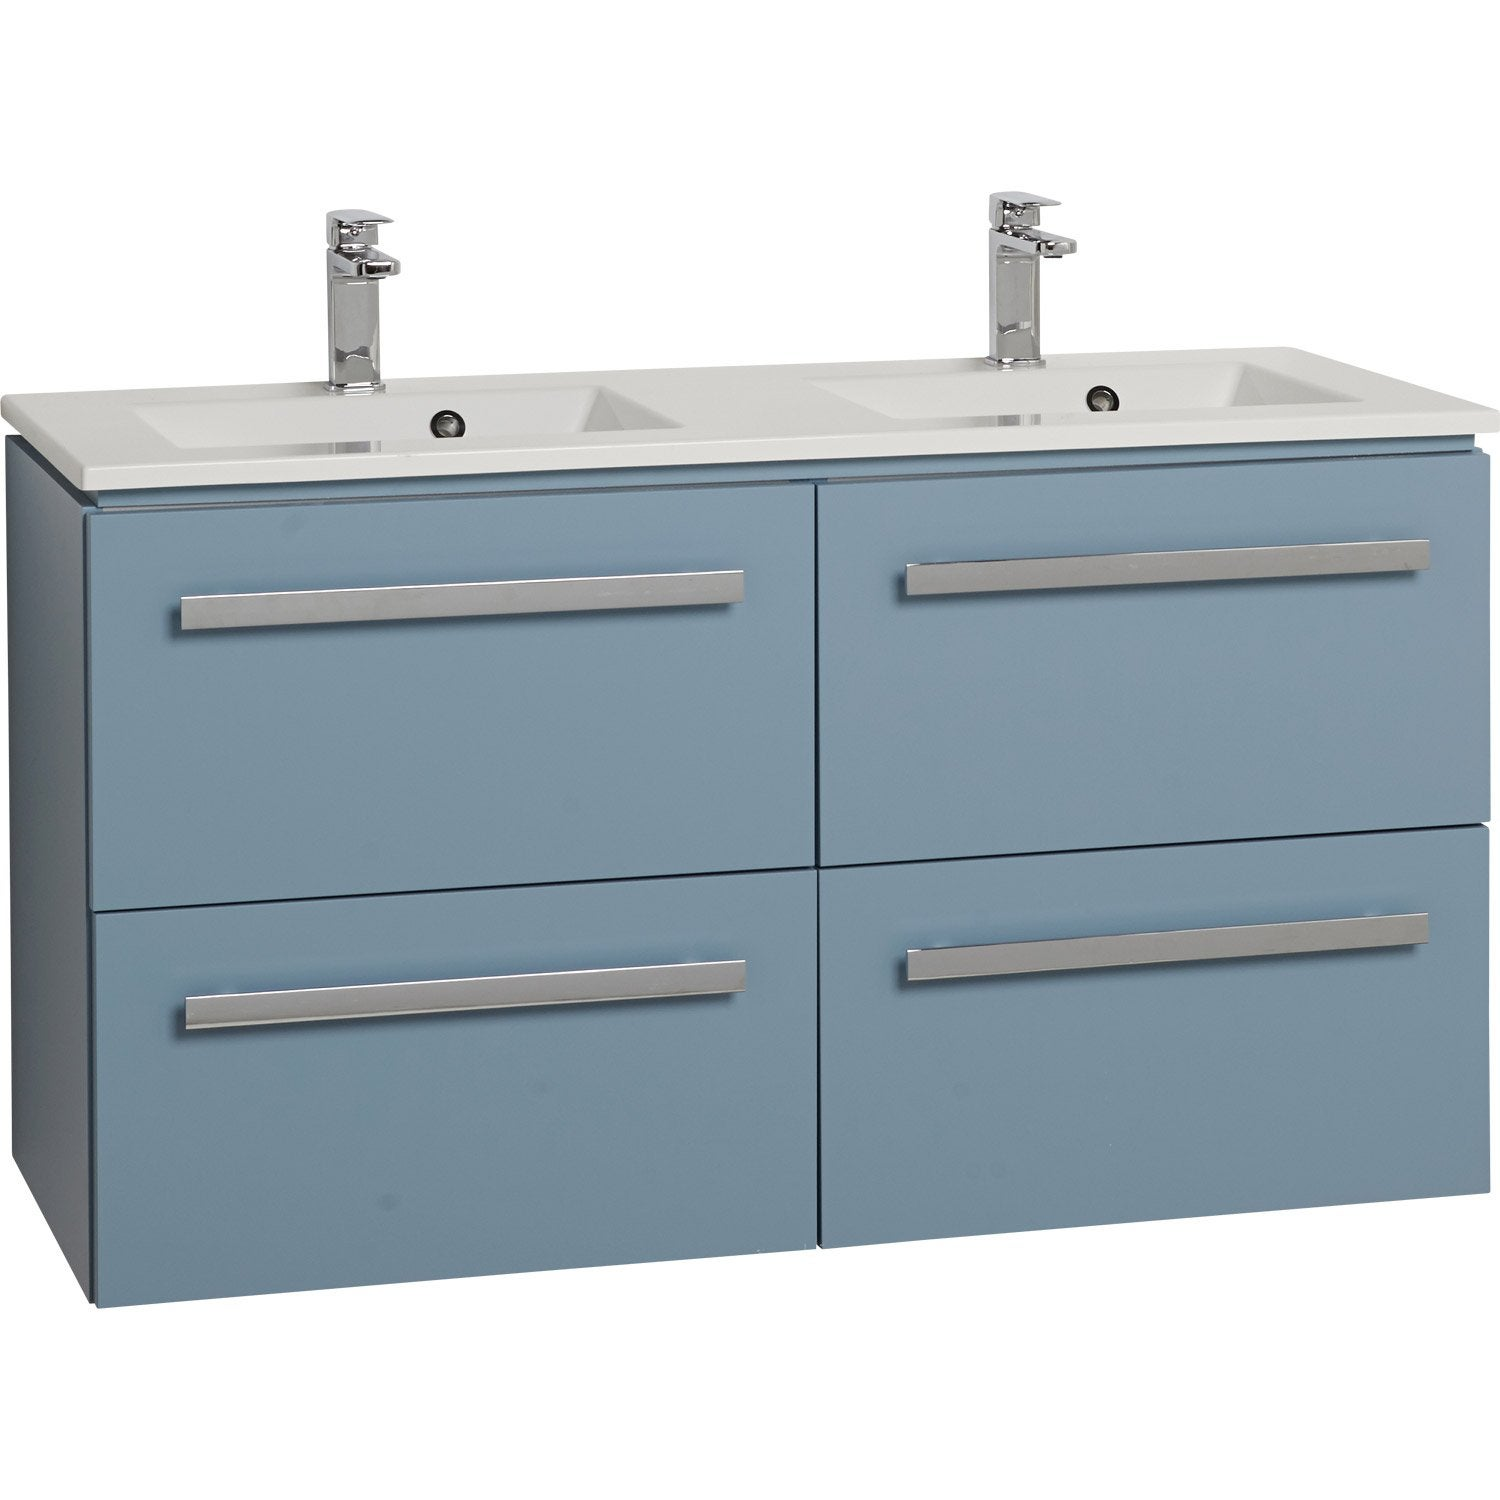 Table rabattable cuisine paris meuble vasque leroy merlin for Meuble salle de bain double vasque leroy merlin